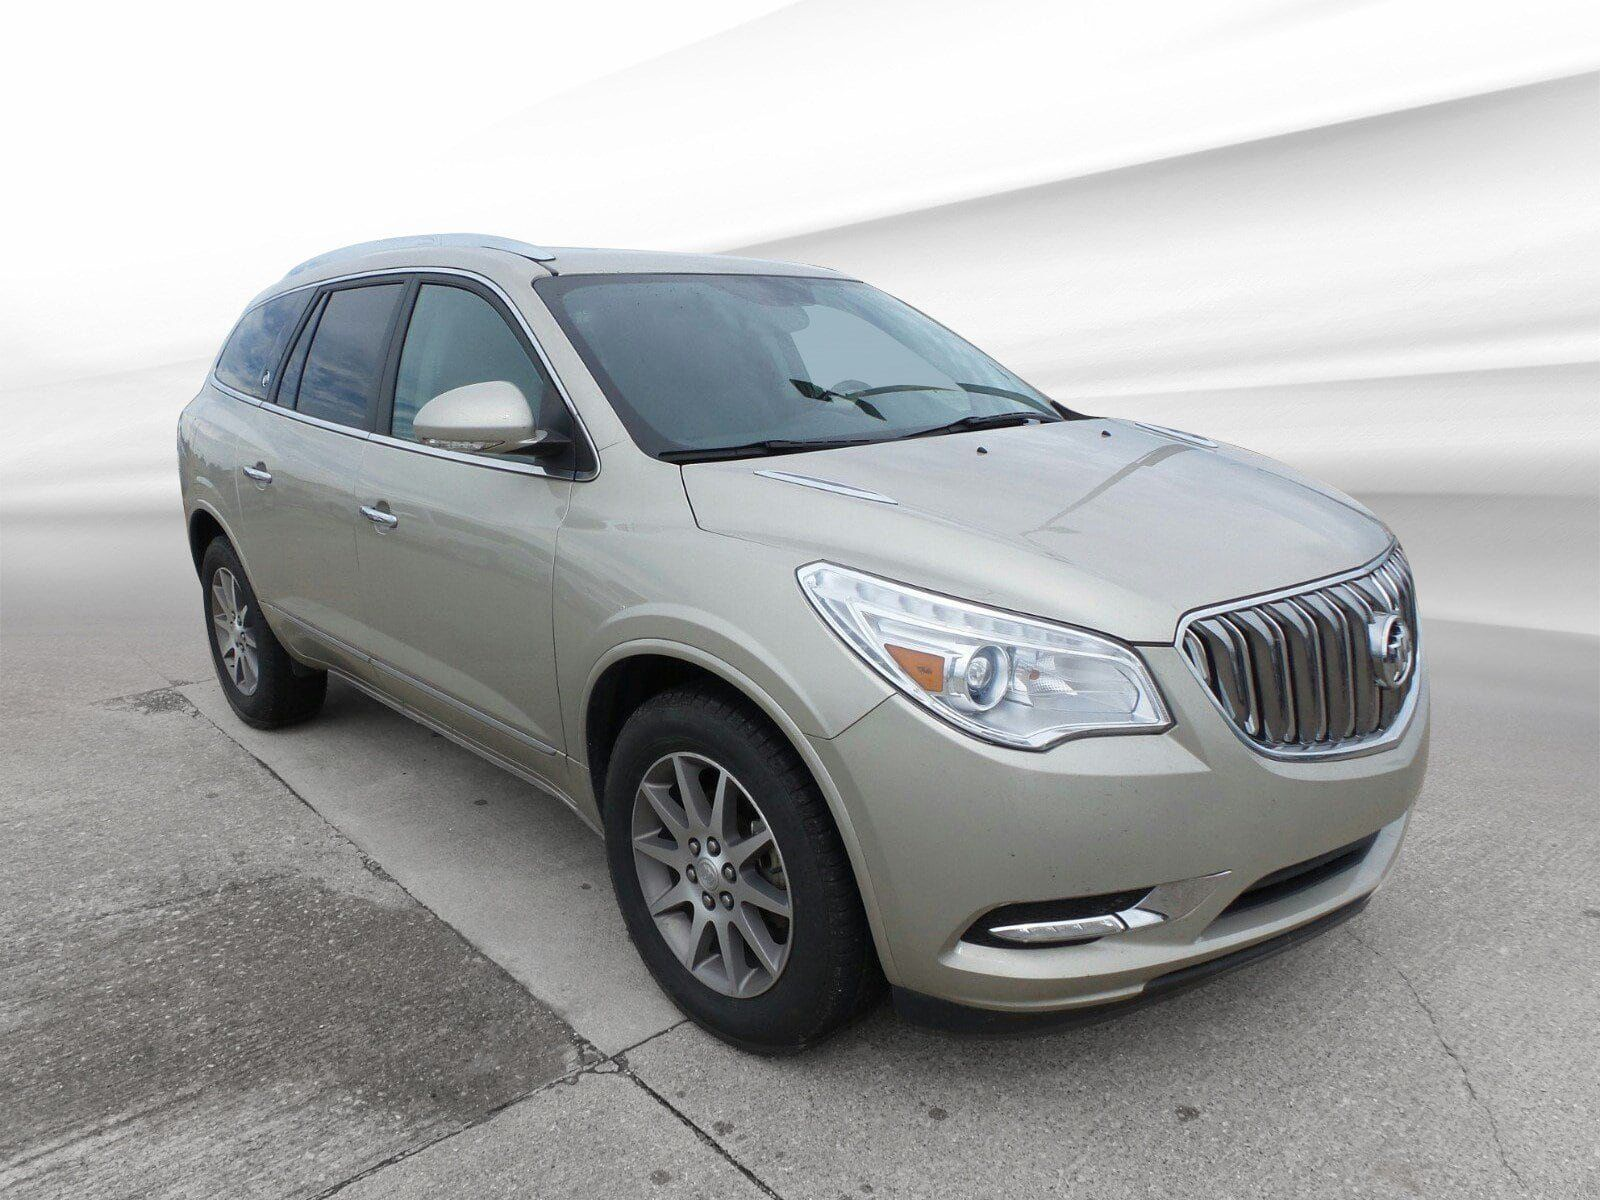 2021 Buick Enclave Release In 2020 Buick Enclave Buick Enclave